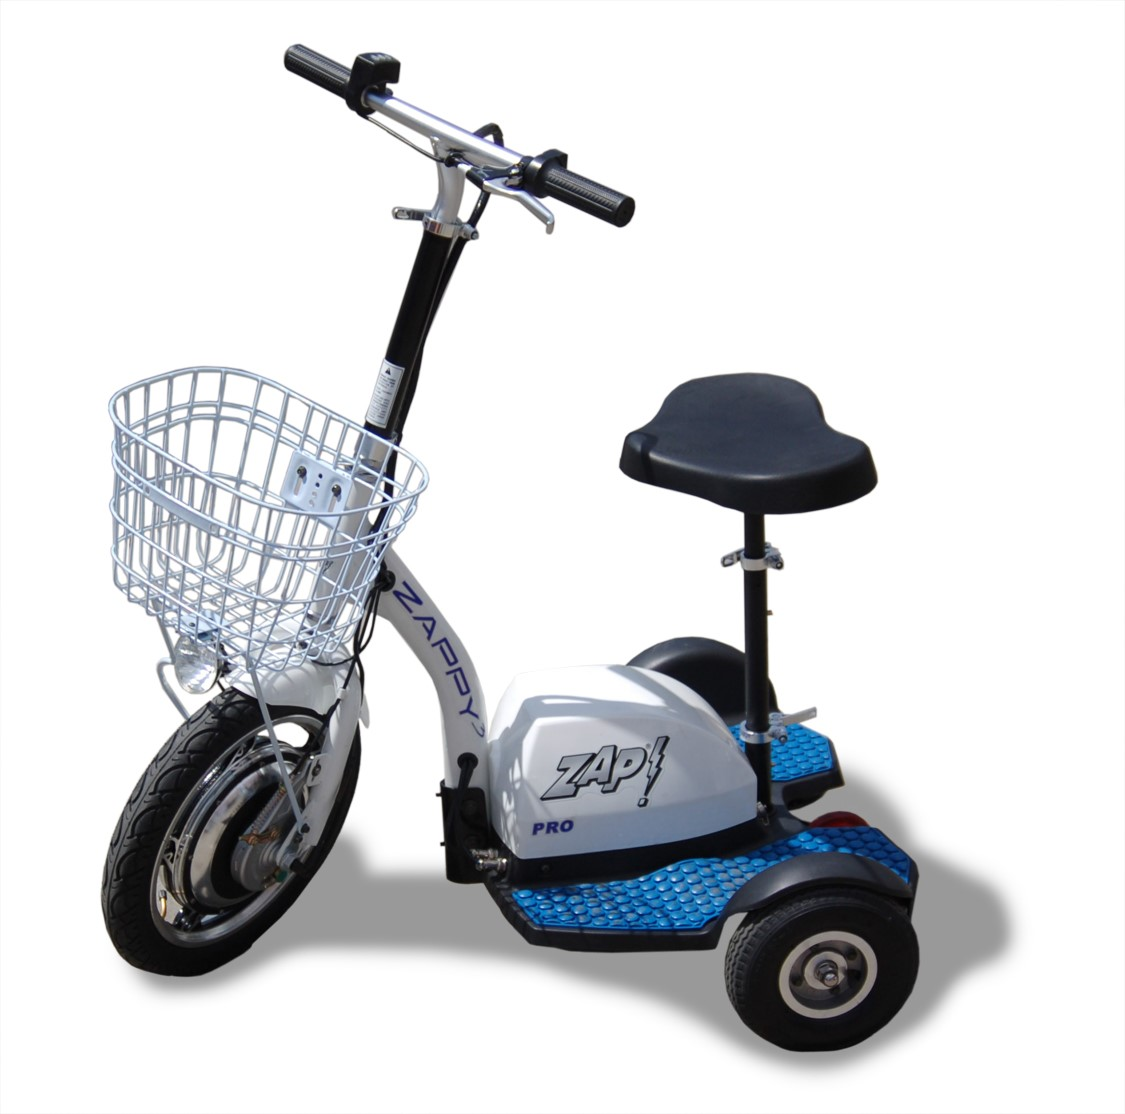 Zappy 3 Pro Jr. Three Wheeled Electric Scooter